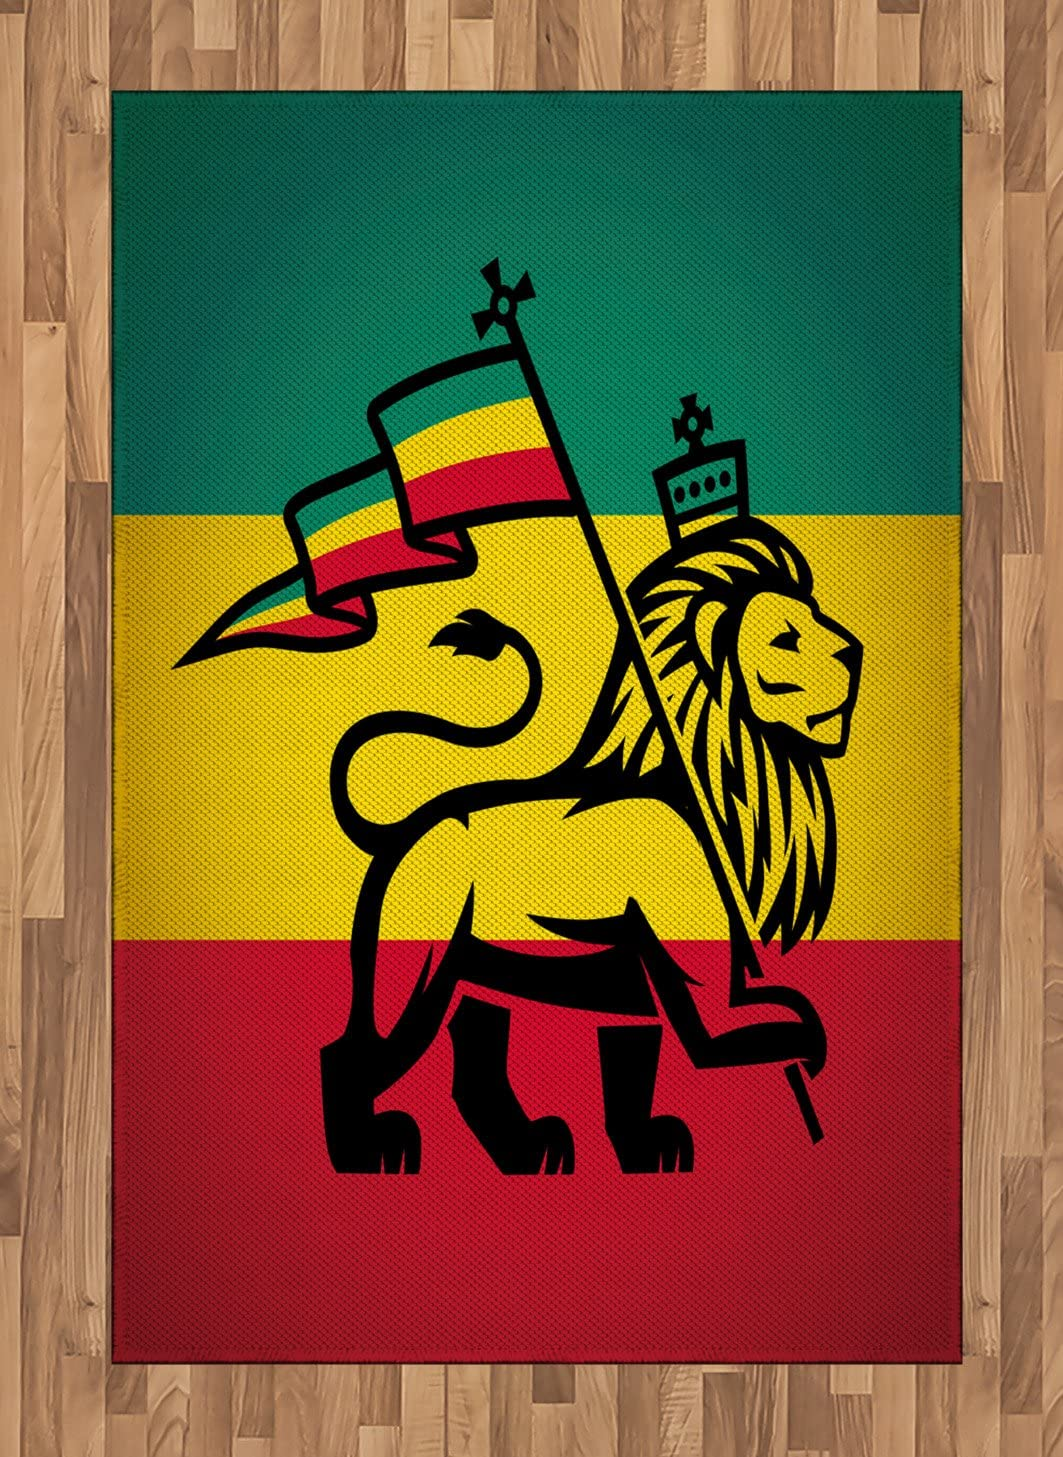 Ambesonne Rasta Area Rug, Judah Lion with a Rastafari Flag King Jungle Reggae Theme Art Print, Flat Woven Accent Rug for Living Room Bedroom Dining Room, 4' X 5.7', Black Green Yellow and Red